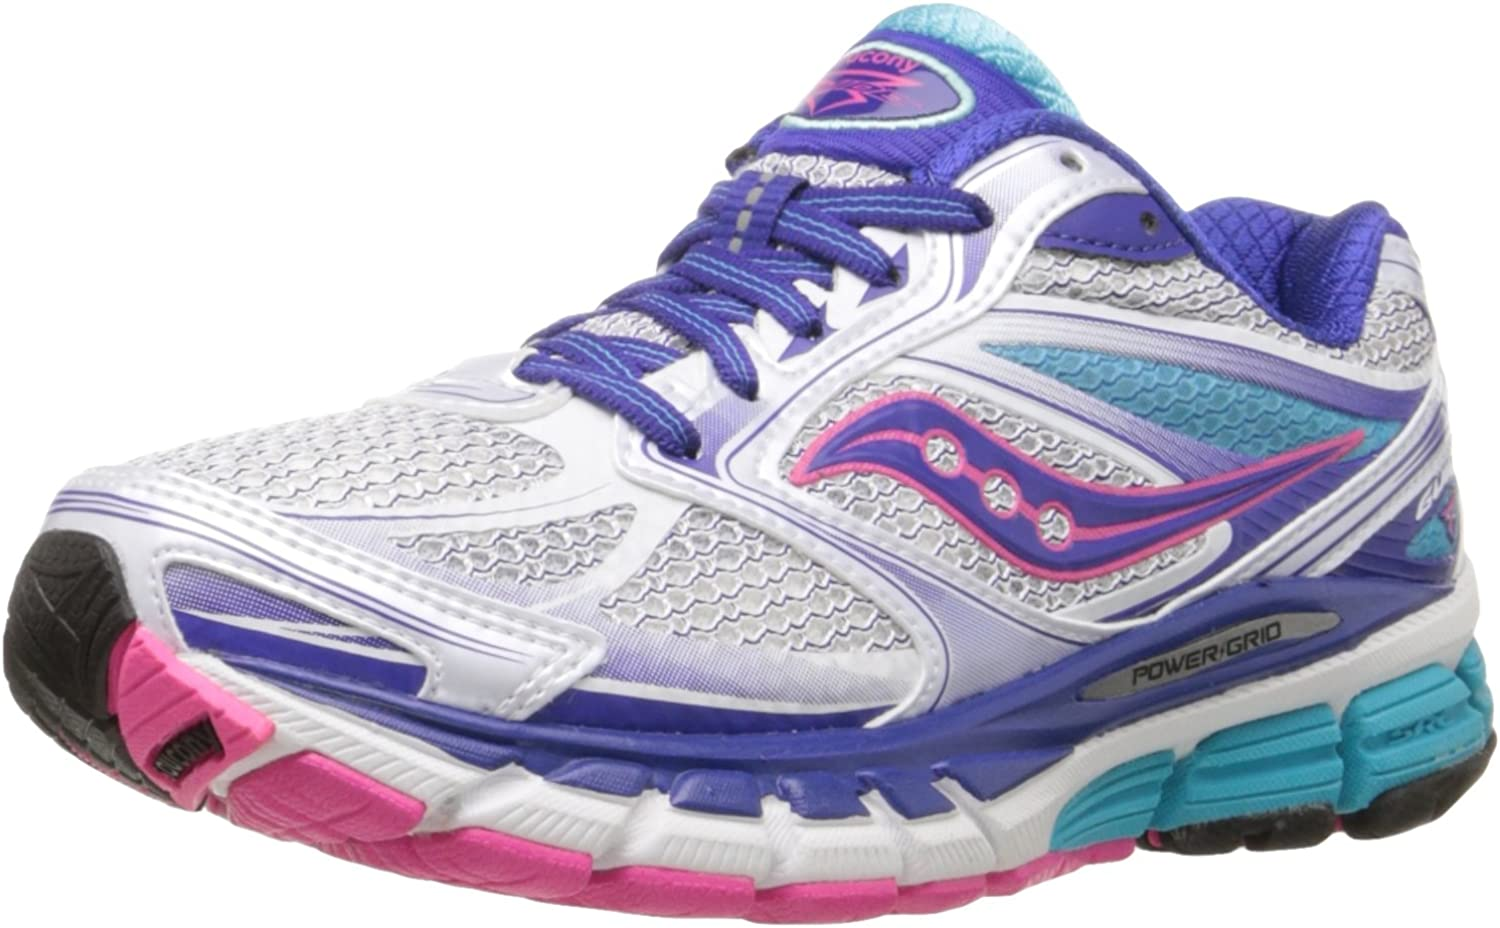 Saucony Women's National Max 86% OFF products Guide Running Shoe 8